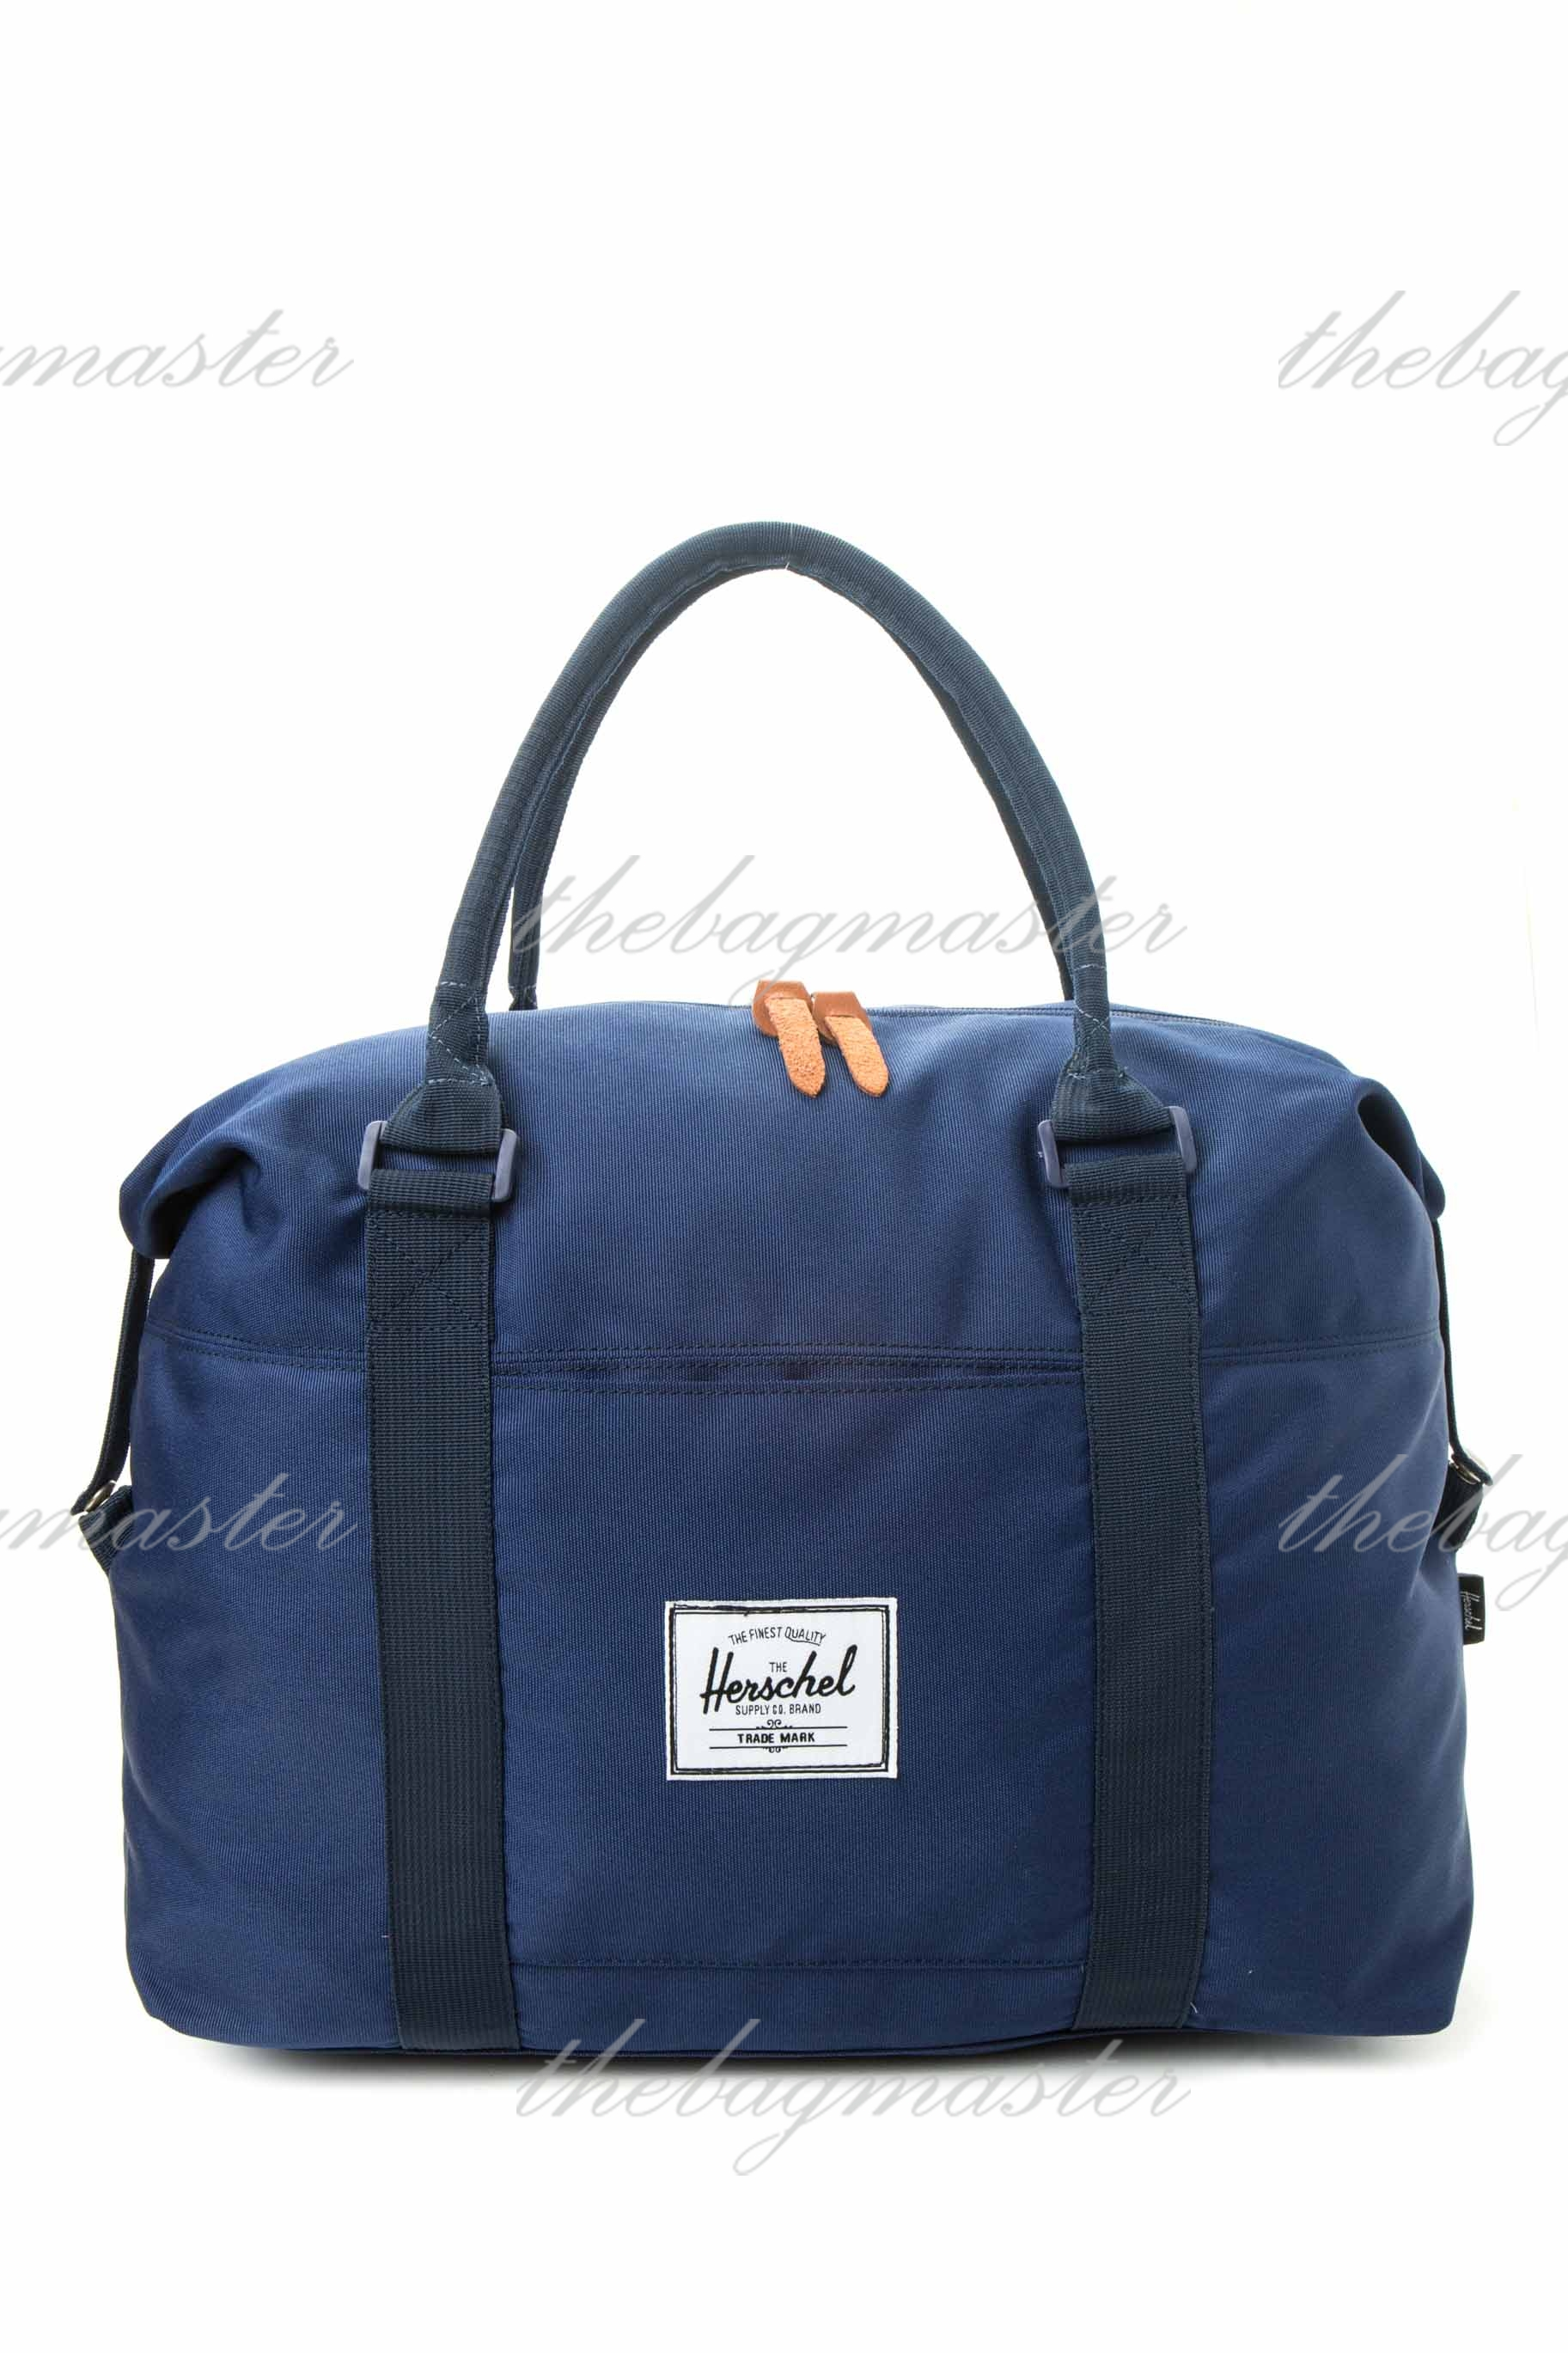 Herschel Supply Backpacks | Herschel Duffle Bag | Herschel Outfitter